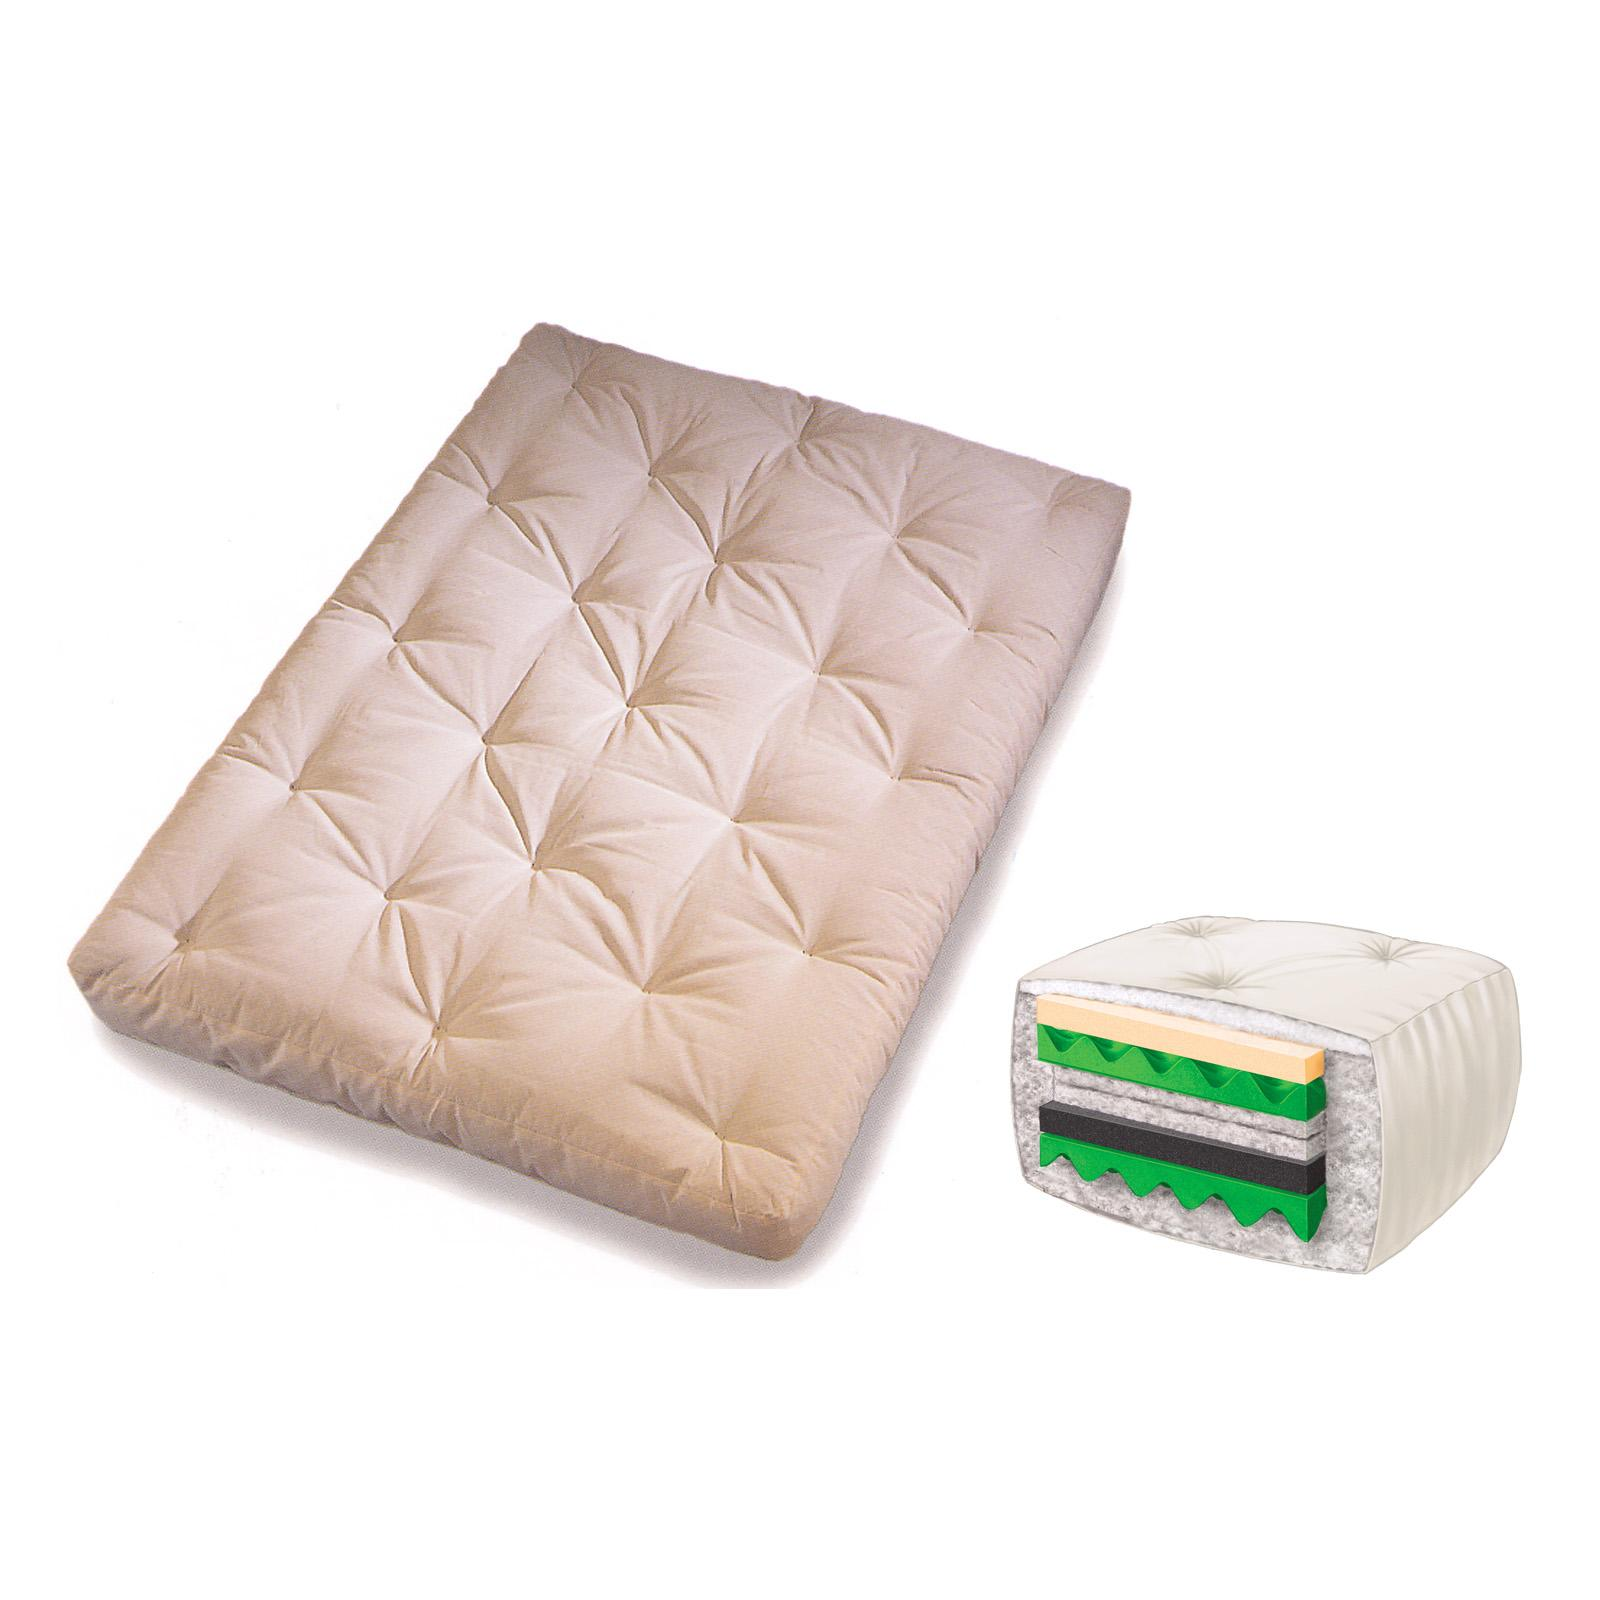 Memory Foam Futon Mattress Antelope Brown S914a5 2050